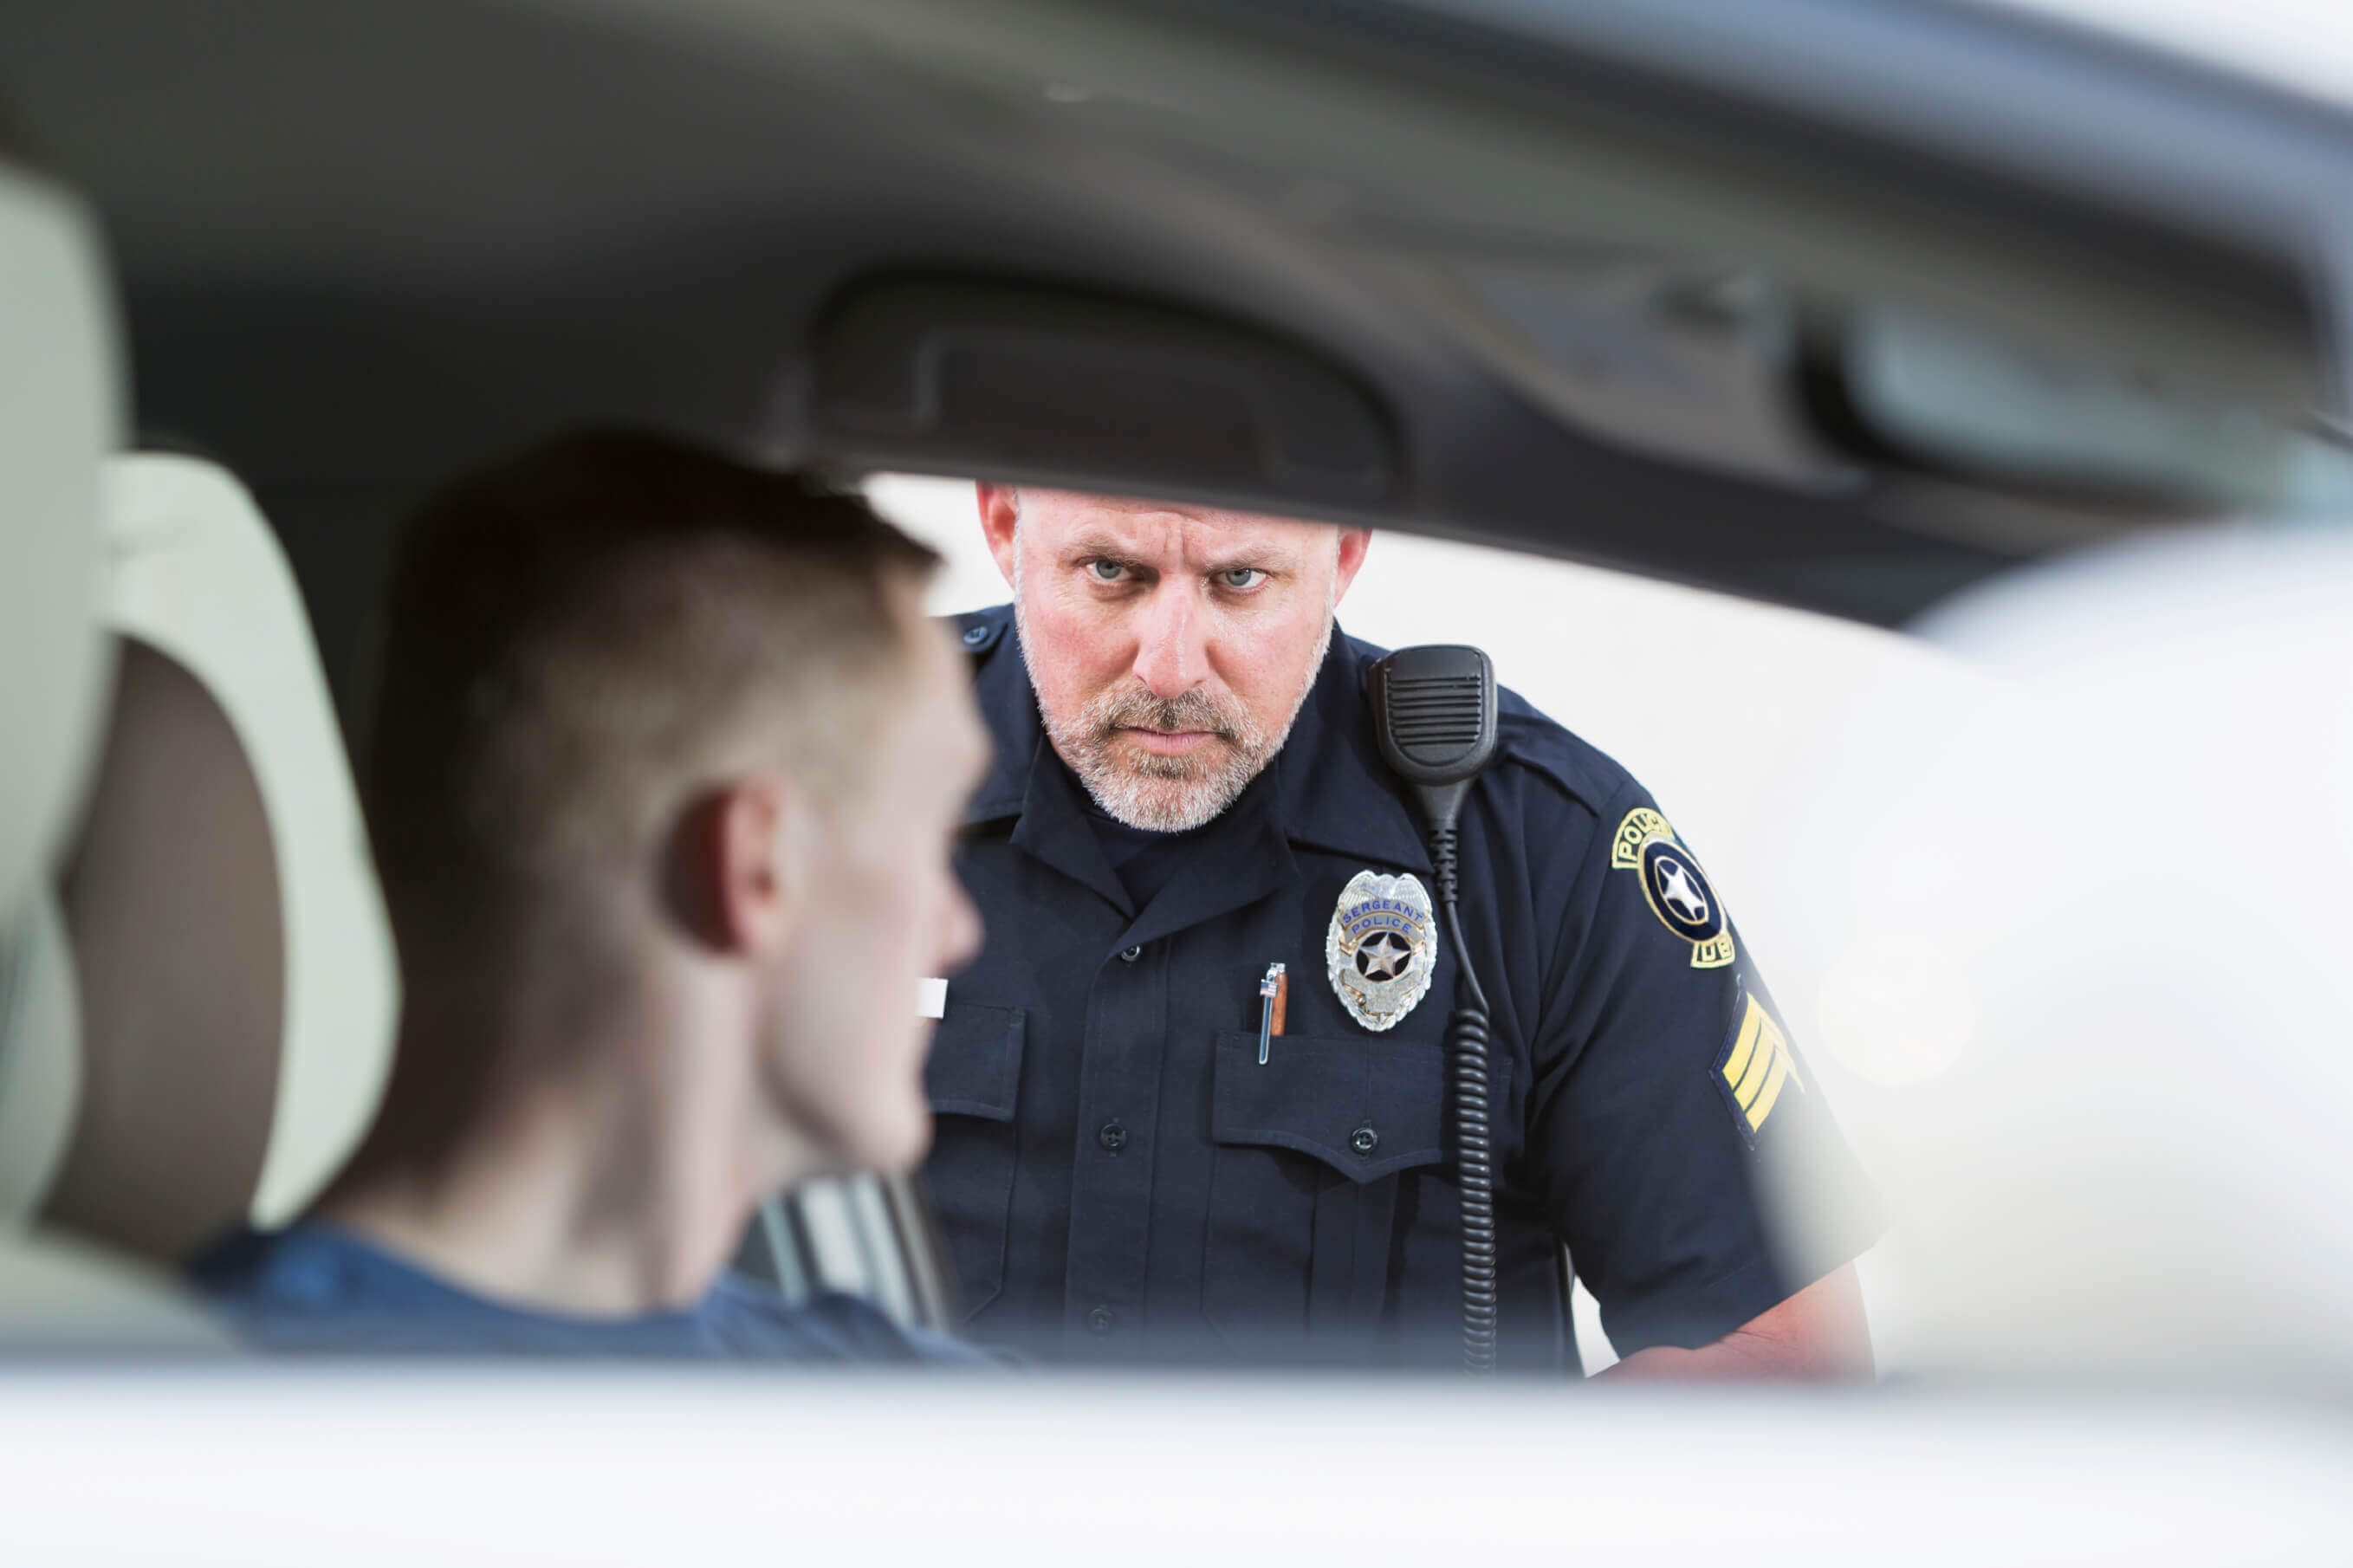 Policeman stopping a driver - checkpoints California